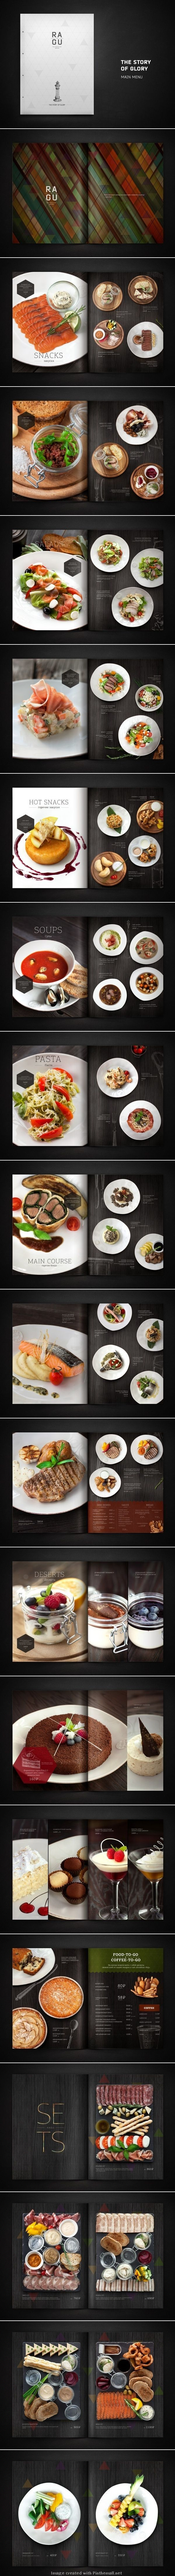 There is nothing better in a menu than high quality pictures of the food. The polished black wood in the background mimics a table setting and makes the pictures of the food pop. The larger image on the left serves as a balance for the three smaller dishes on the right.: